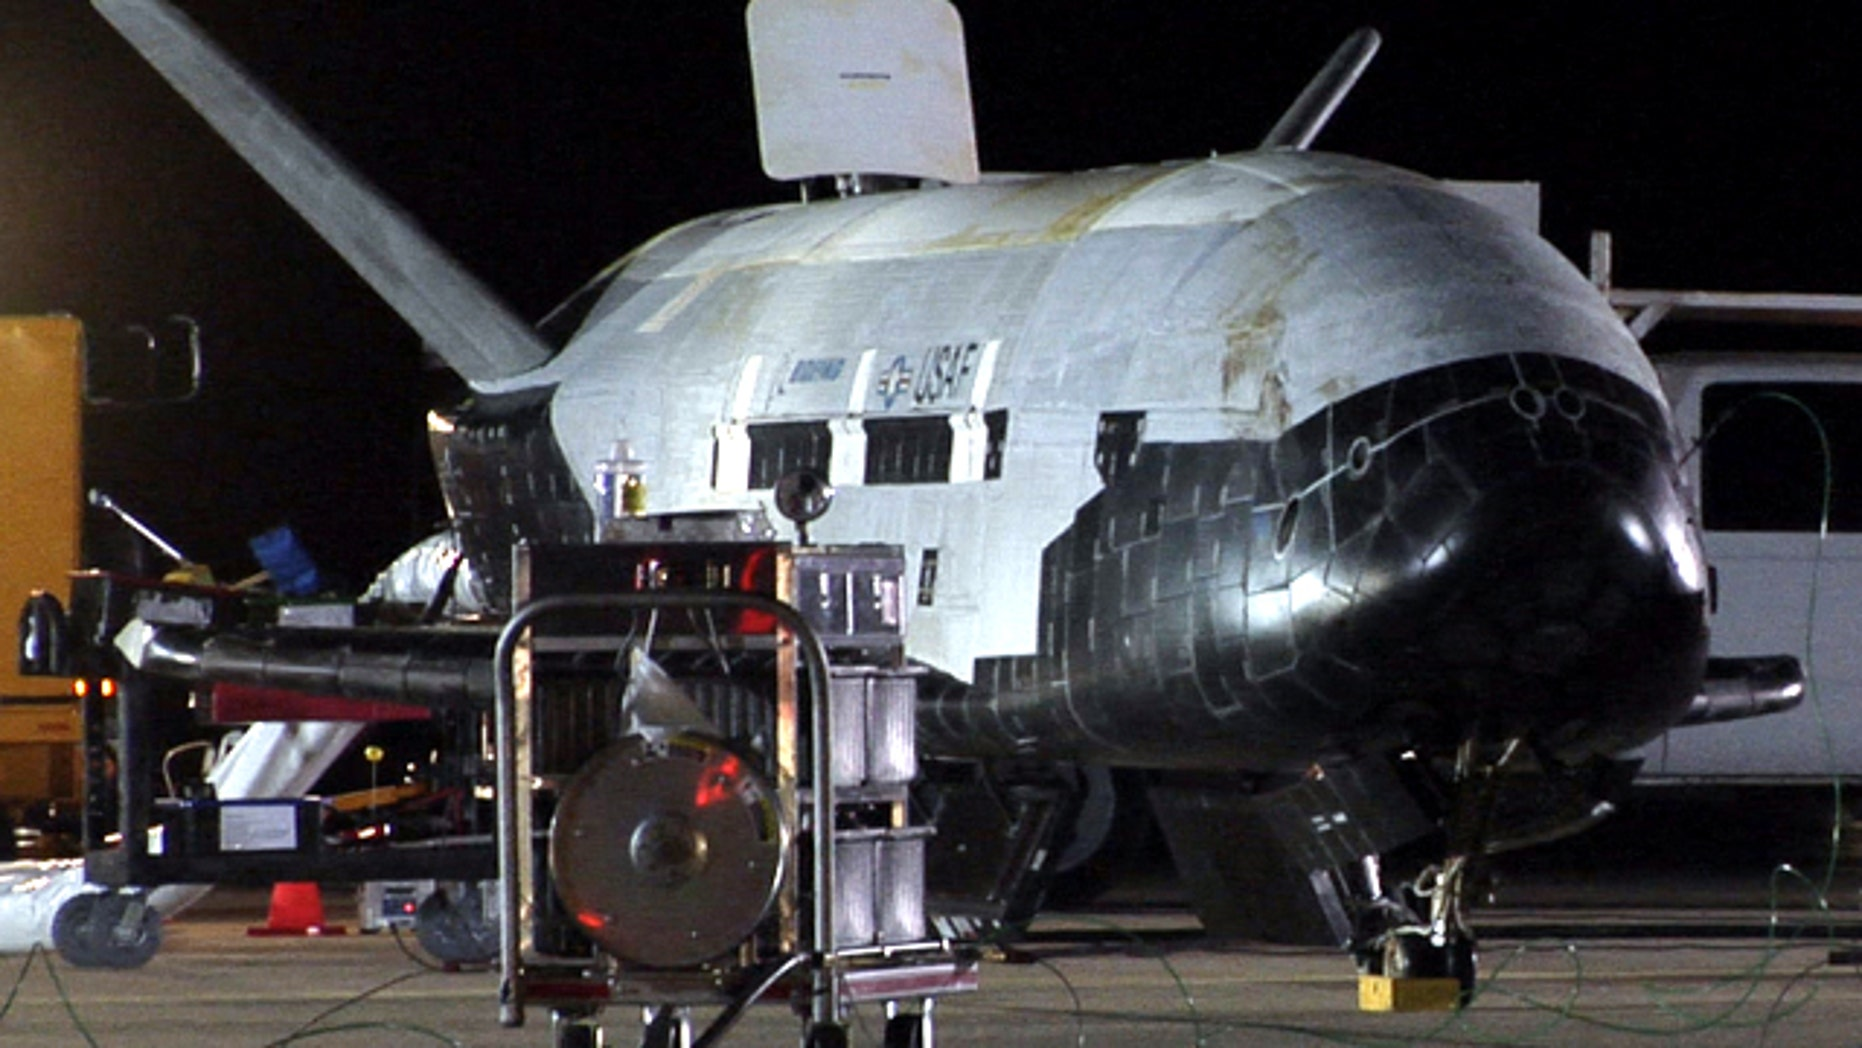 Despite its robotic nature, the X-37B space plane received a warm welcome from Air Force crews at Vandenberg. Here, the vehicle appears to be undergoing safing procedures after landing on Dec. 3 at 1:16 a.m. PST (0916 GMT). Significant weathering, or discoloration, can be seen on the spacecraft's upper thermal blanket insulation.